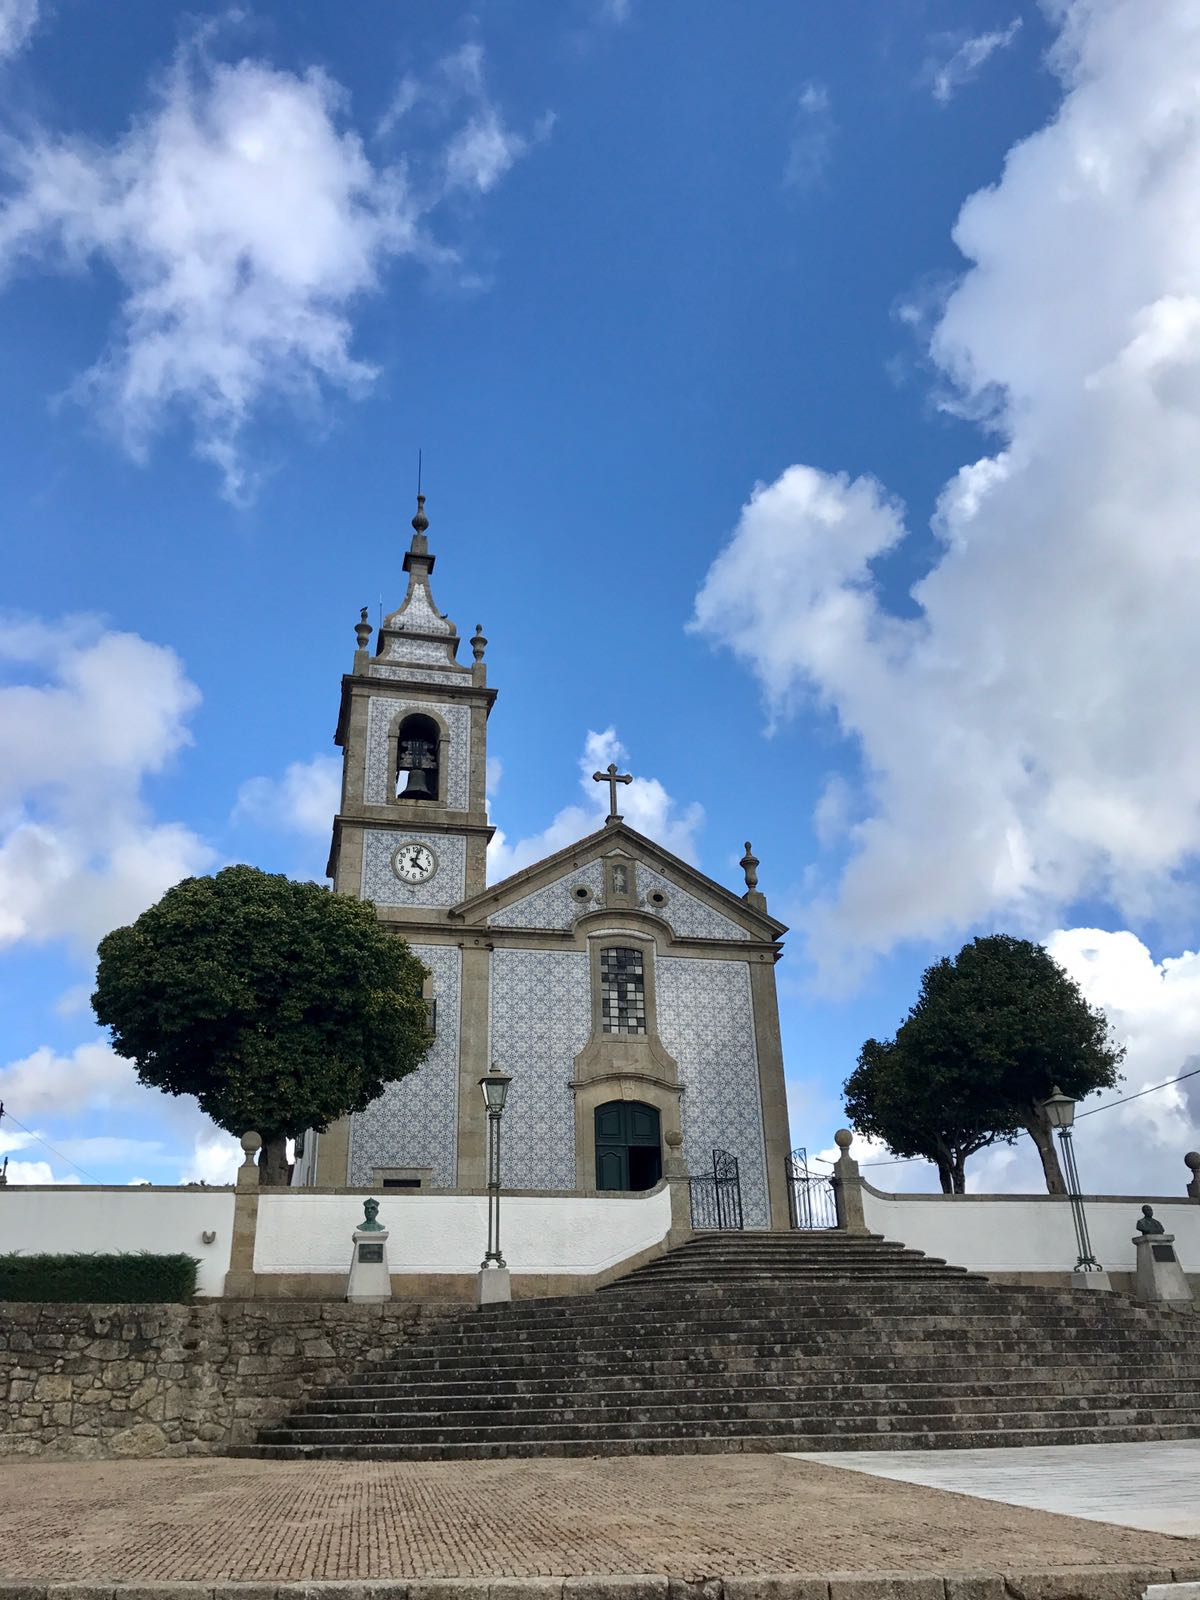 Portuguese church with decorative tiling on the walls instead of plain white